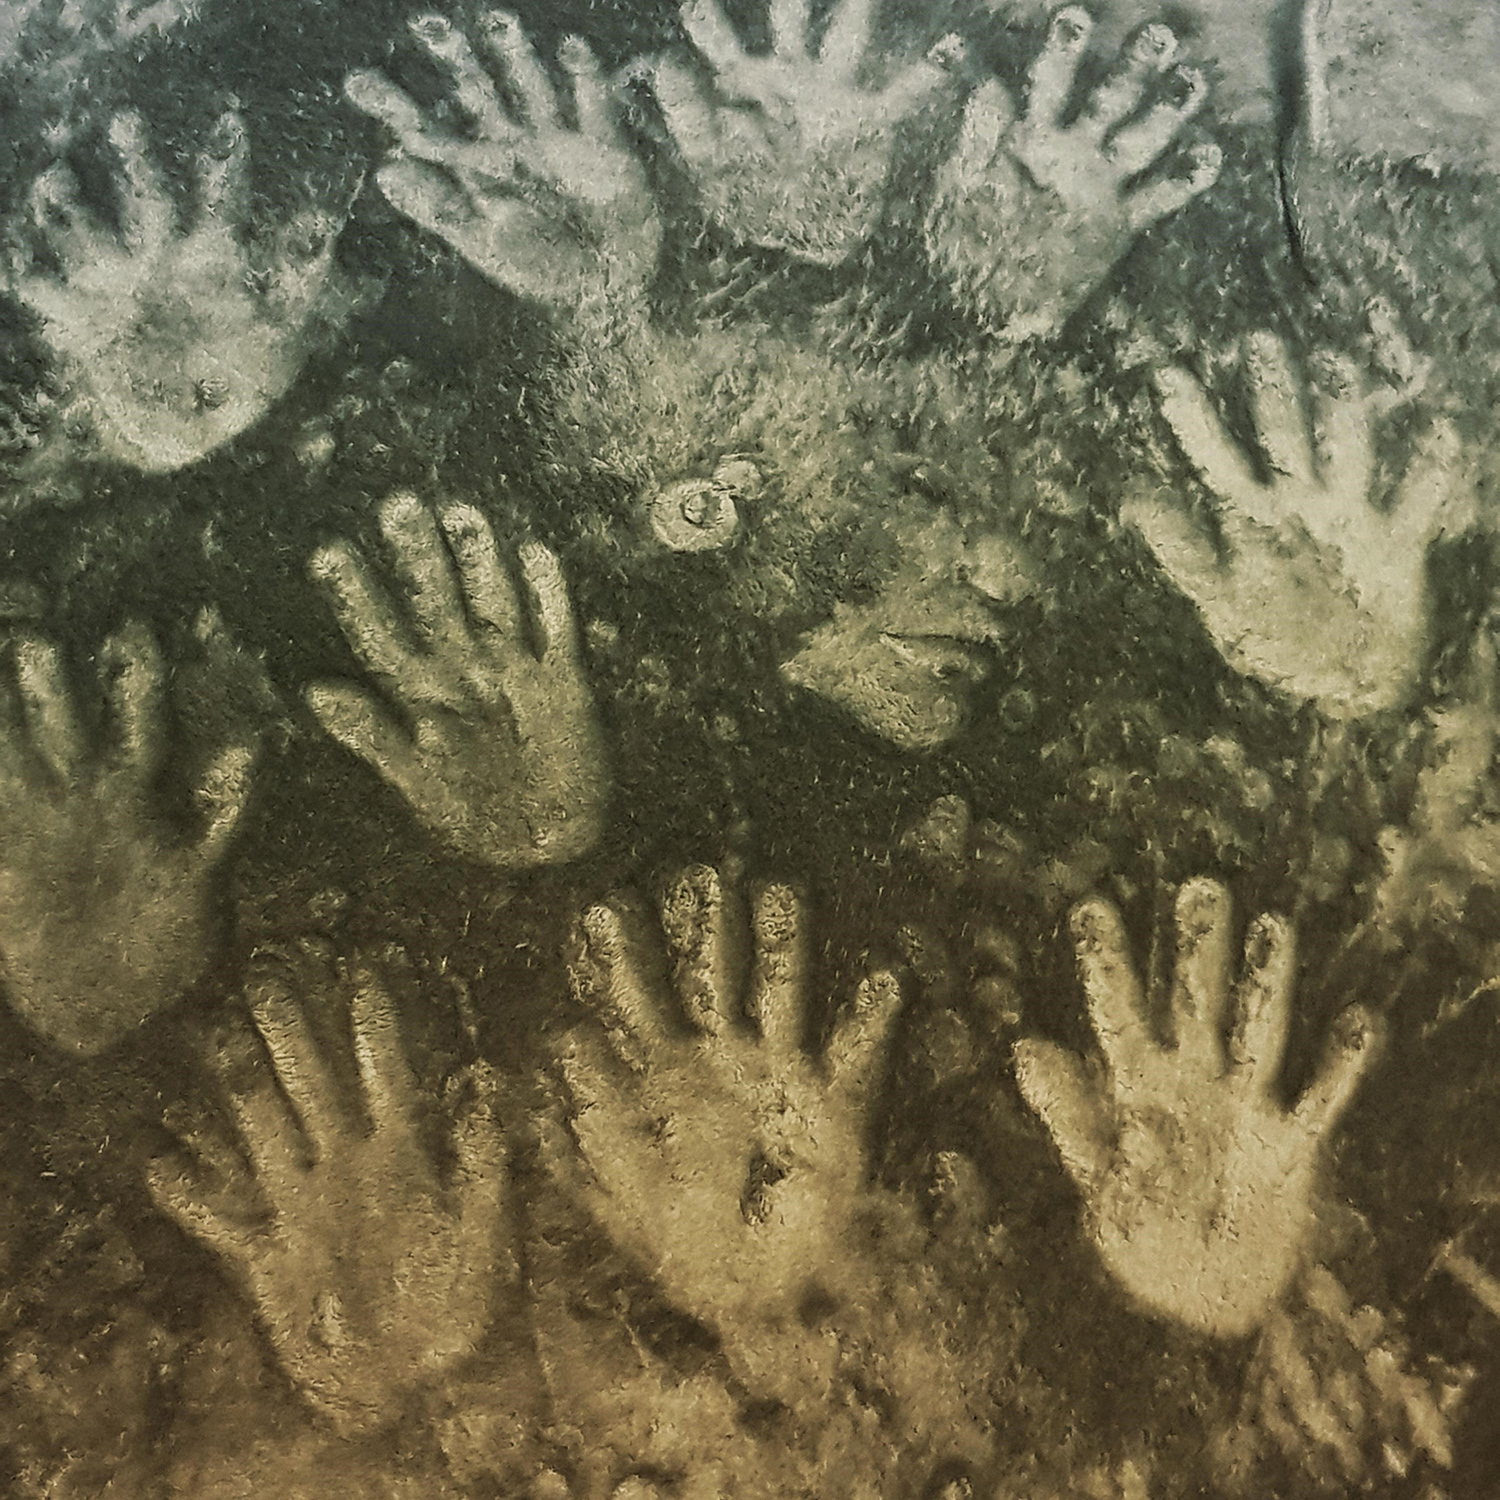 image of many hands and a face as though pressed against the floor